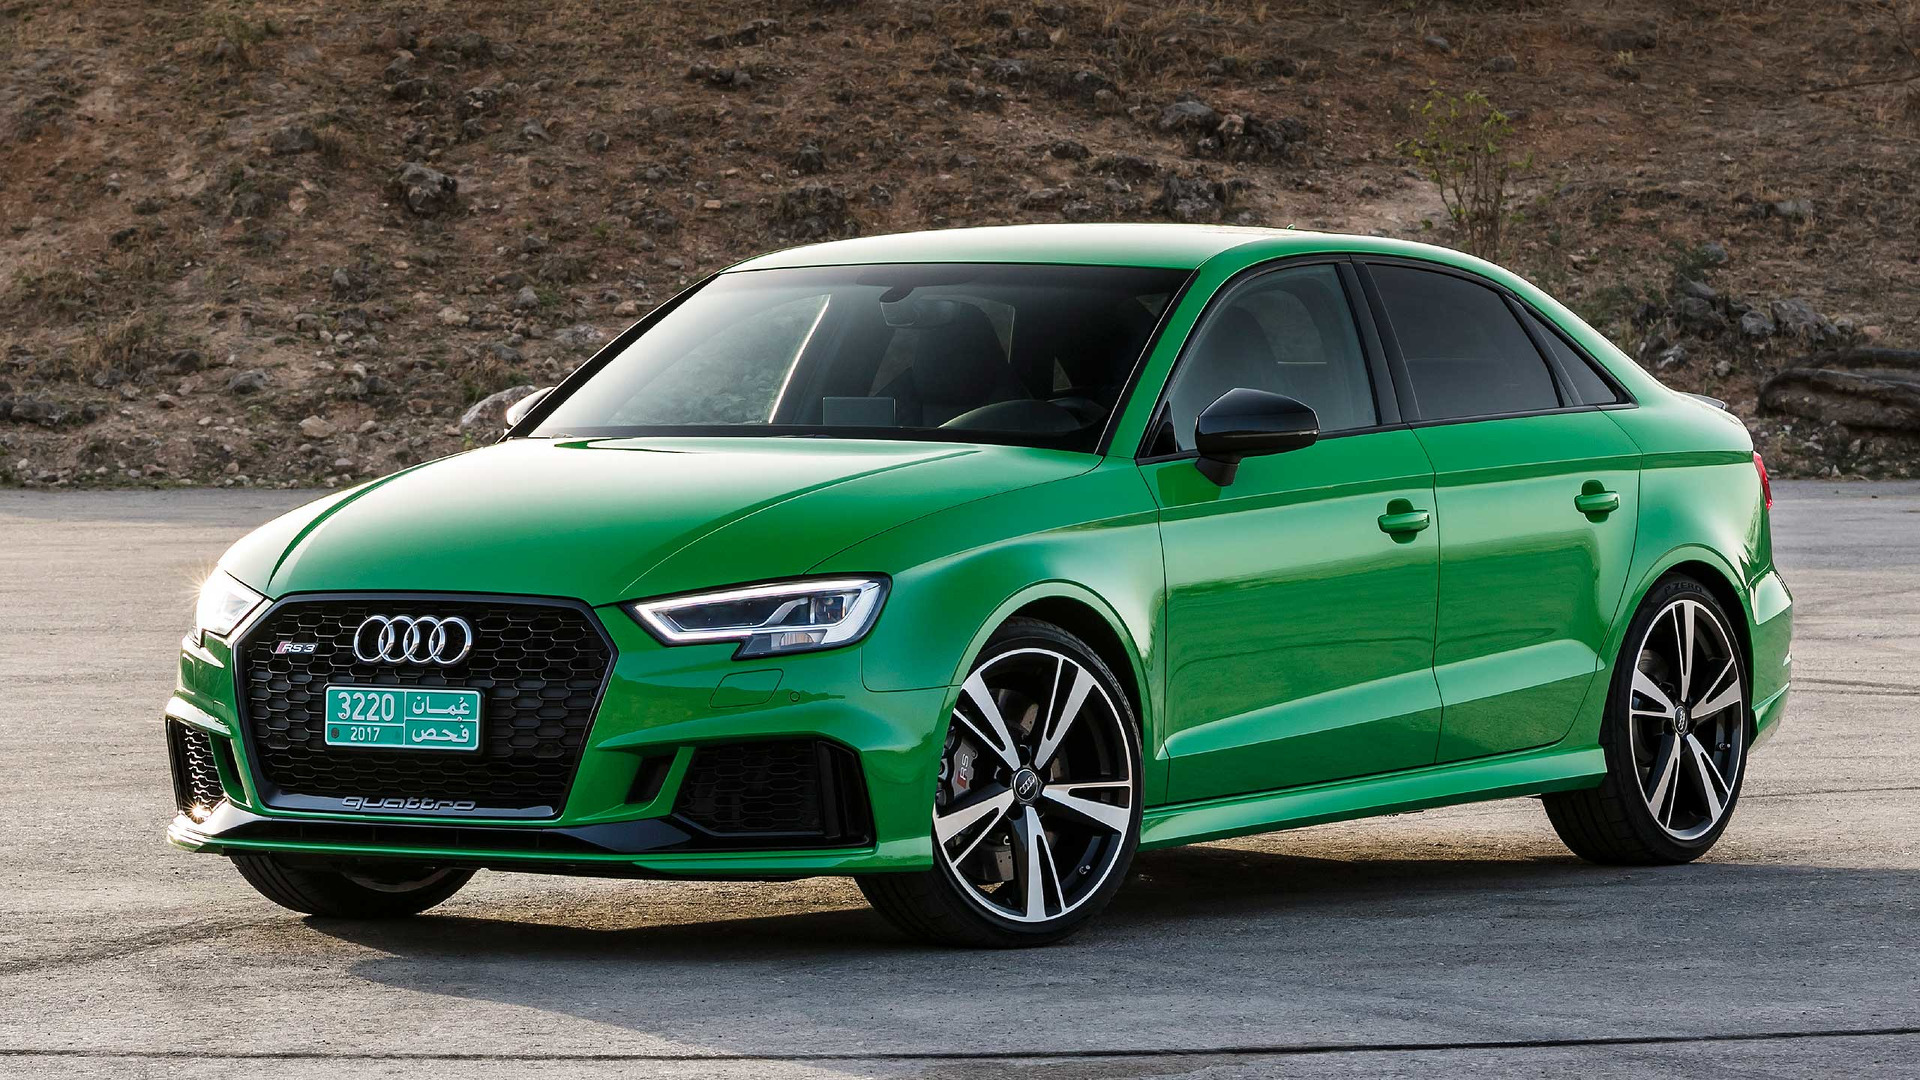 2018 audi rs3 sedan first drive the no compromise compromise. Black Bedroom Furniture Sets. Home Design Ideas